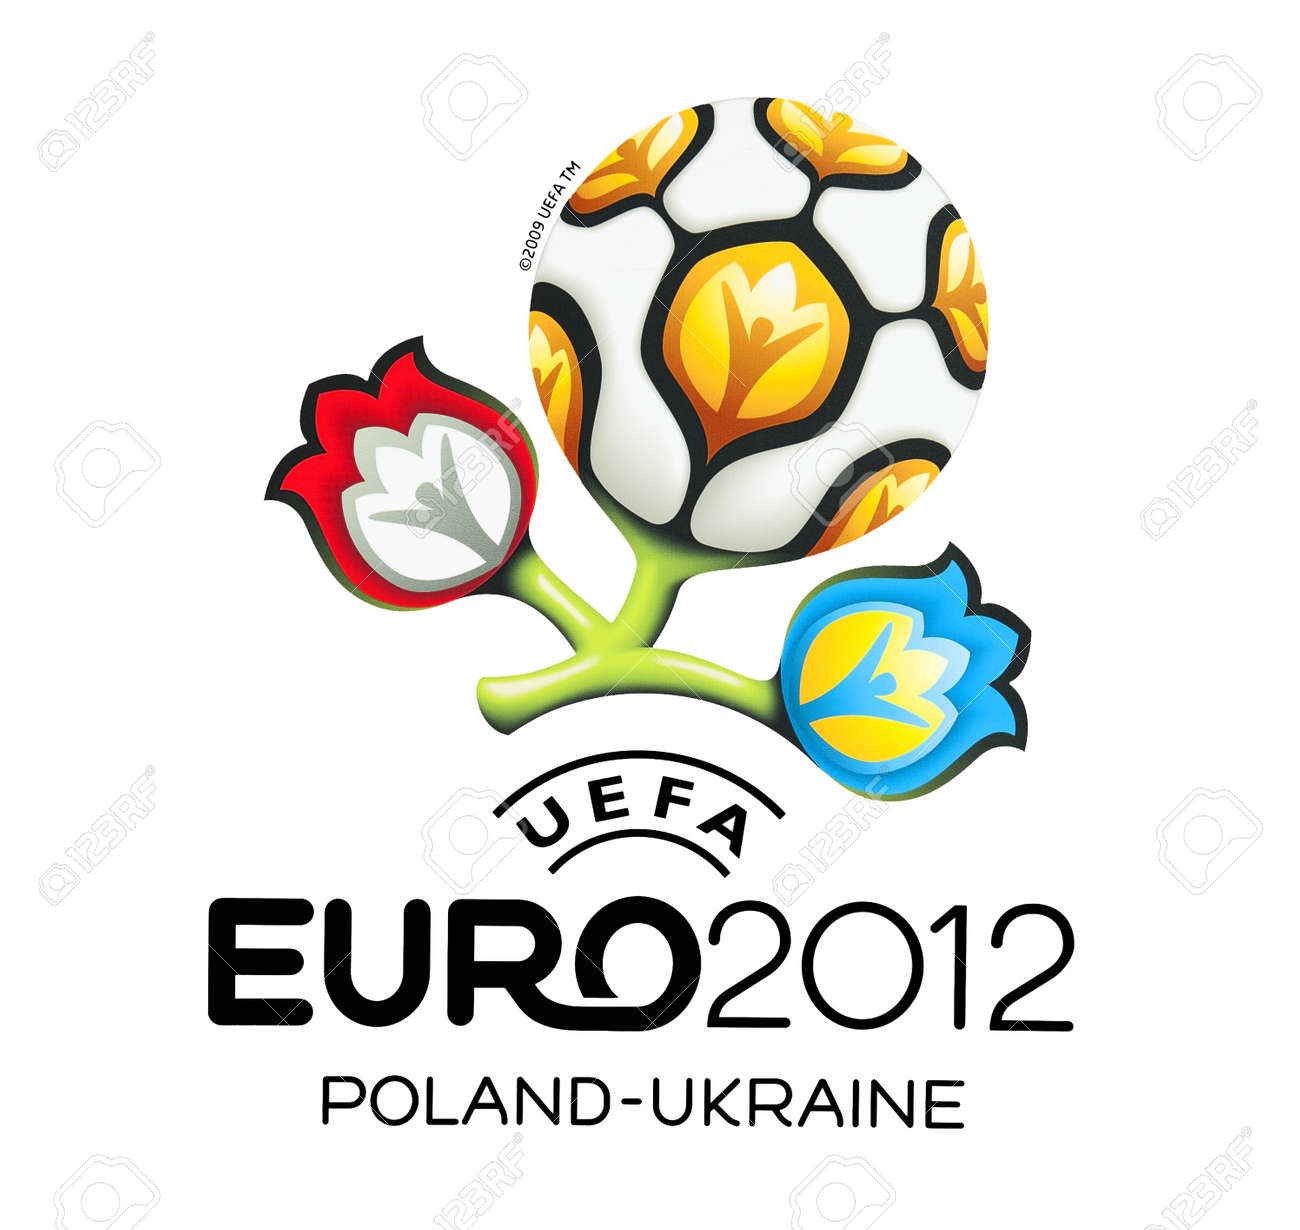 GDANSK, POLAND - MAY 1: Official logo for UEFA EURO 2012, Gdansk, Poland, May 1, 2012 Stock Photo - 13669357